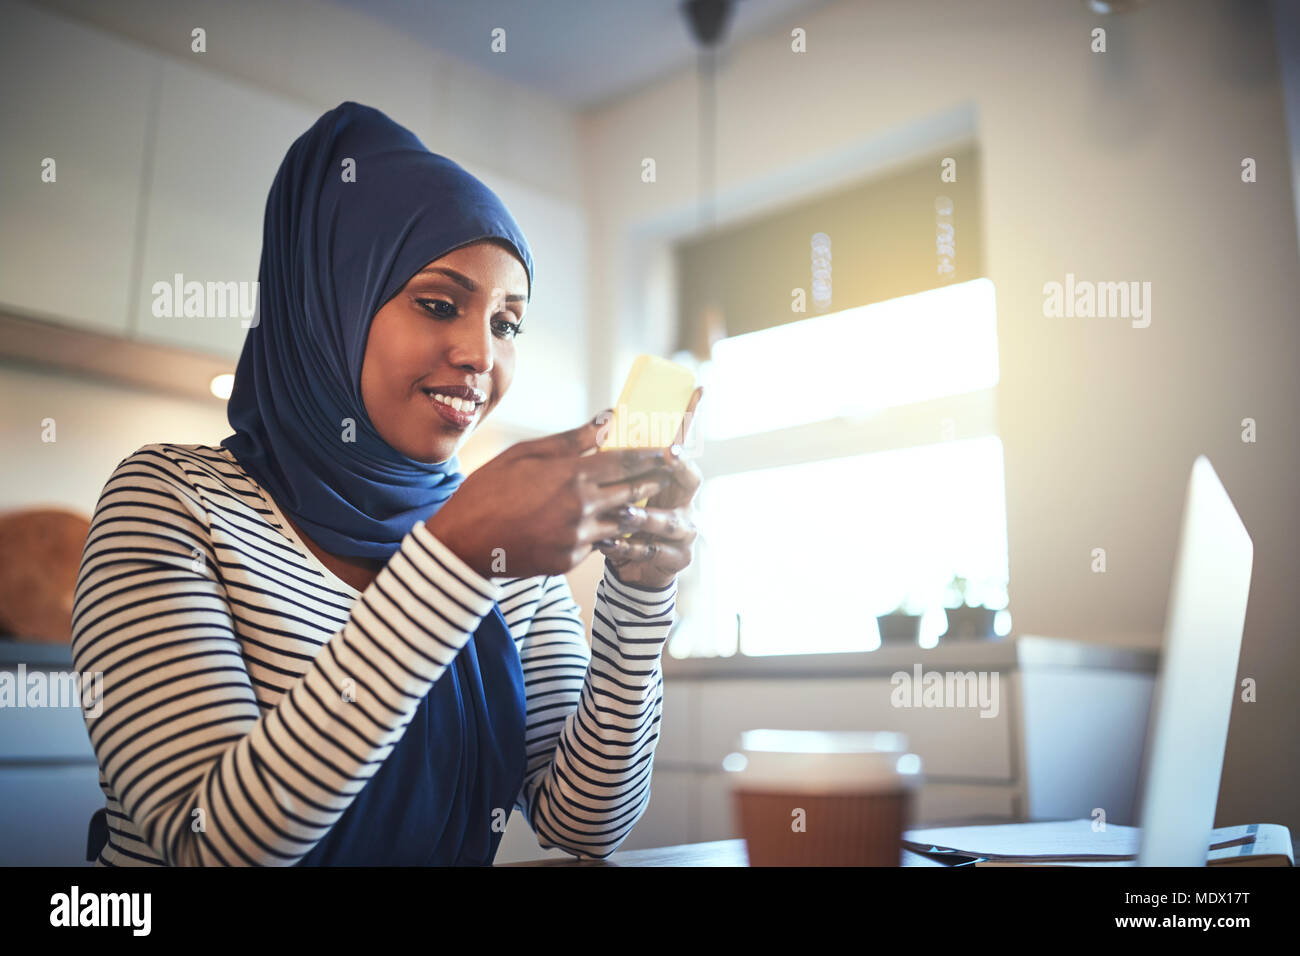 Smiling young Arabic woman wearing a hijab sitting in her kitchen at home sending a text message and using a laptop Stock Photo